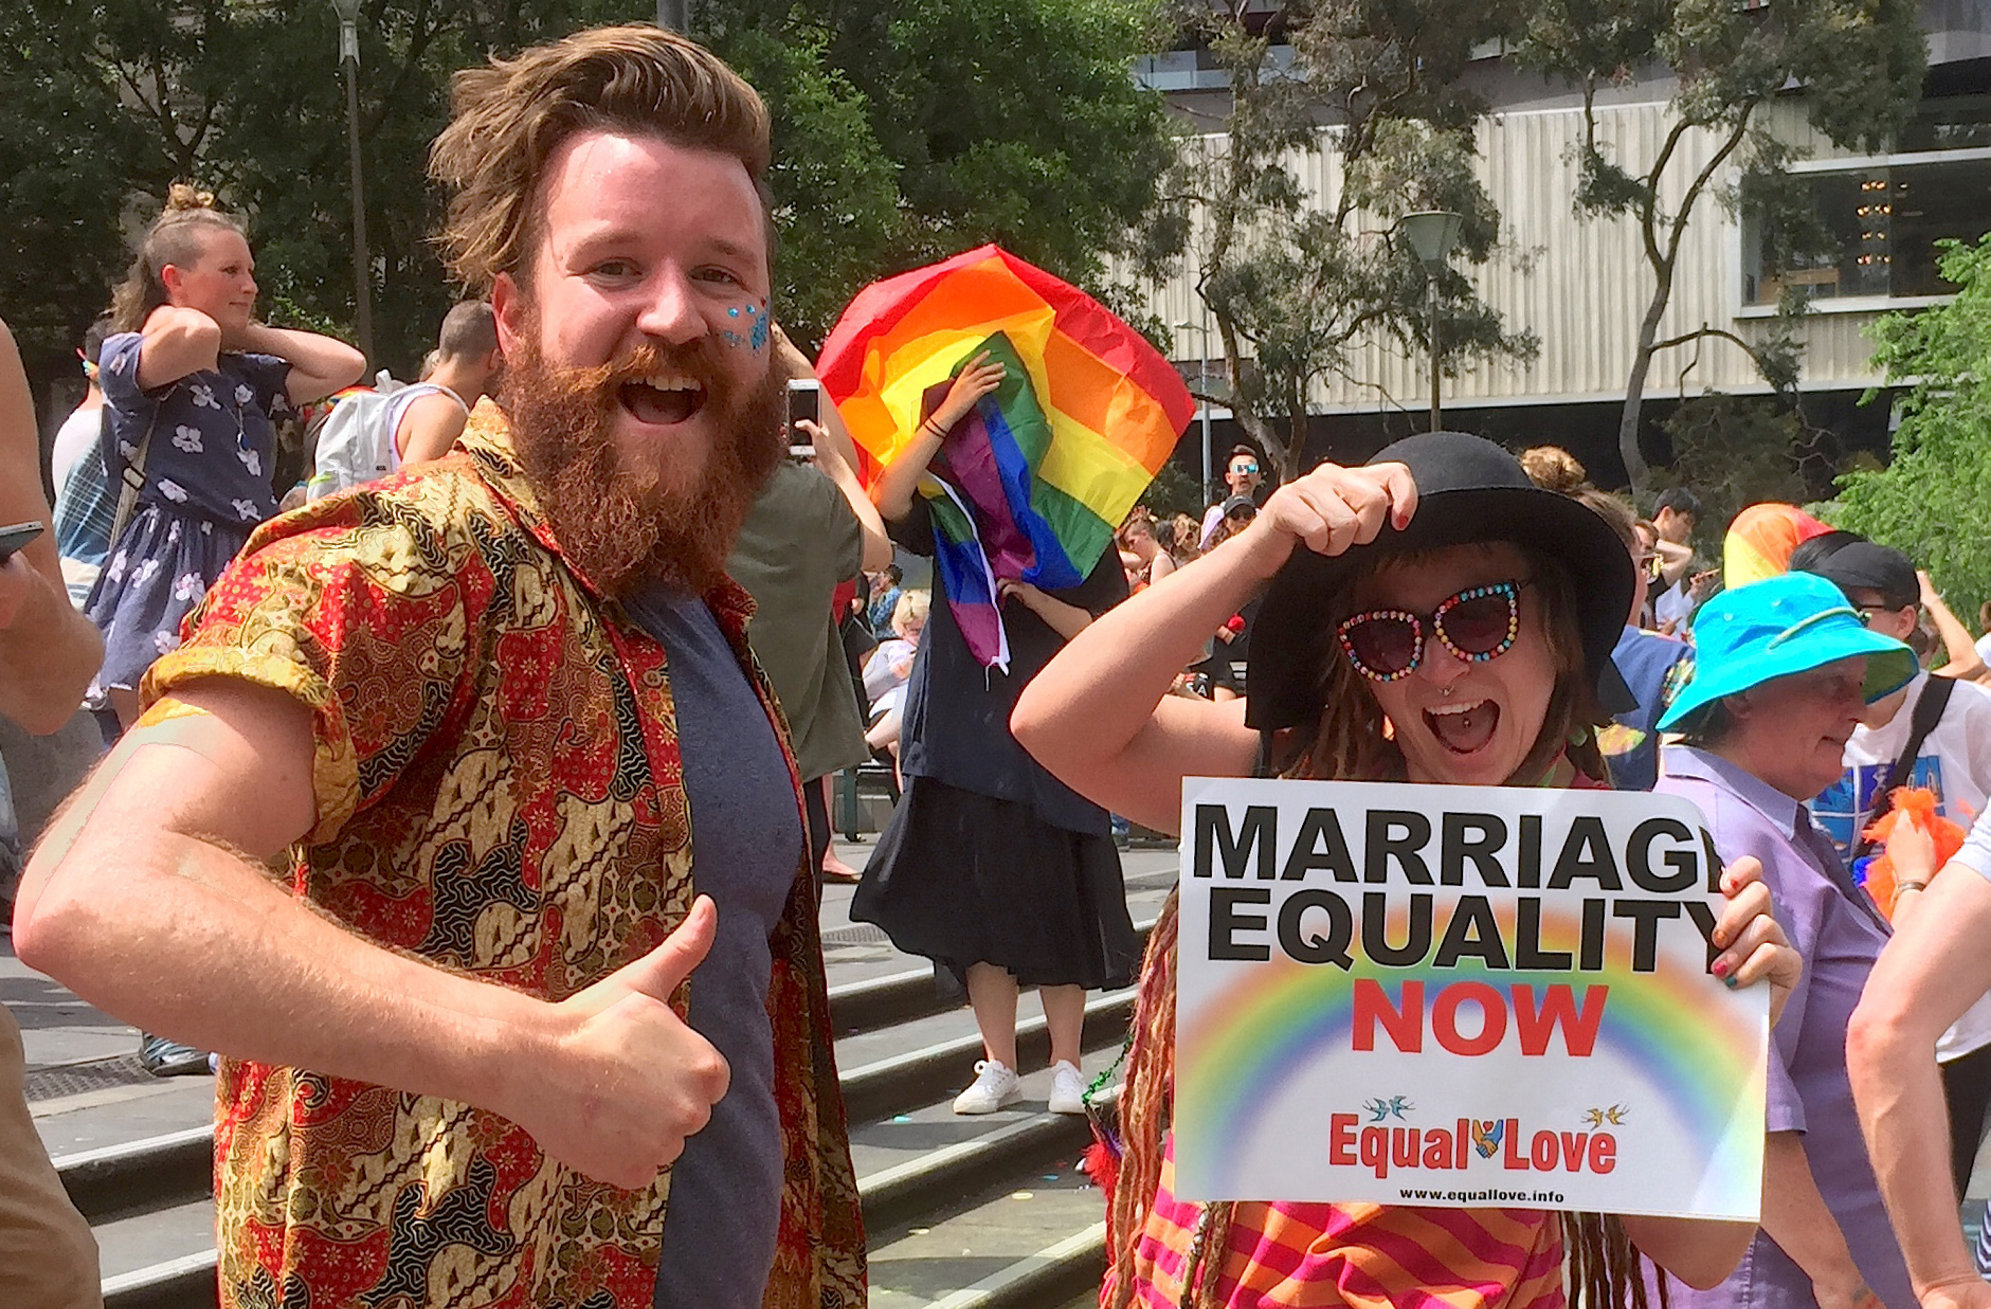 Supporters of the 'Yes' vote react as they celebrate after it was announced the majority of Australians support same-sex marriage in a national survey, at a rally in Sydney